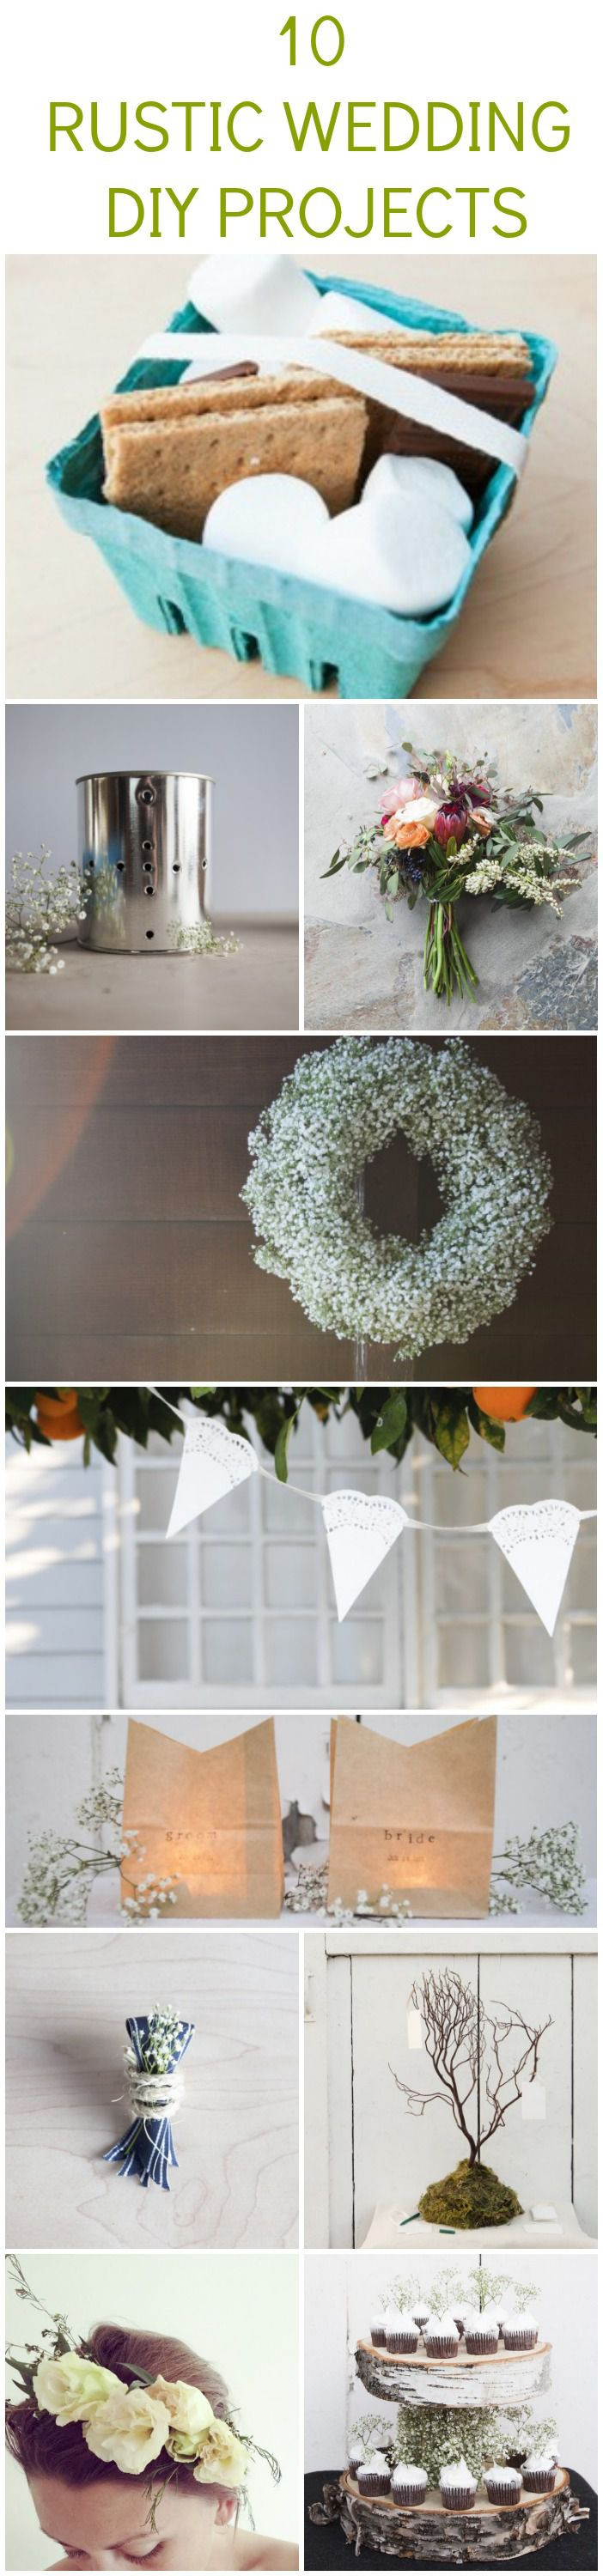 Best ideas about DIY Country Wedding . Save or Pin 10 Rustic Wedding DIY Projects You Should Try Rustic Now.